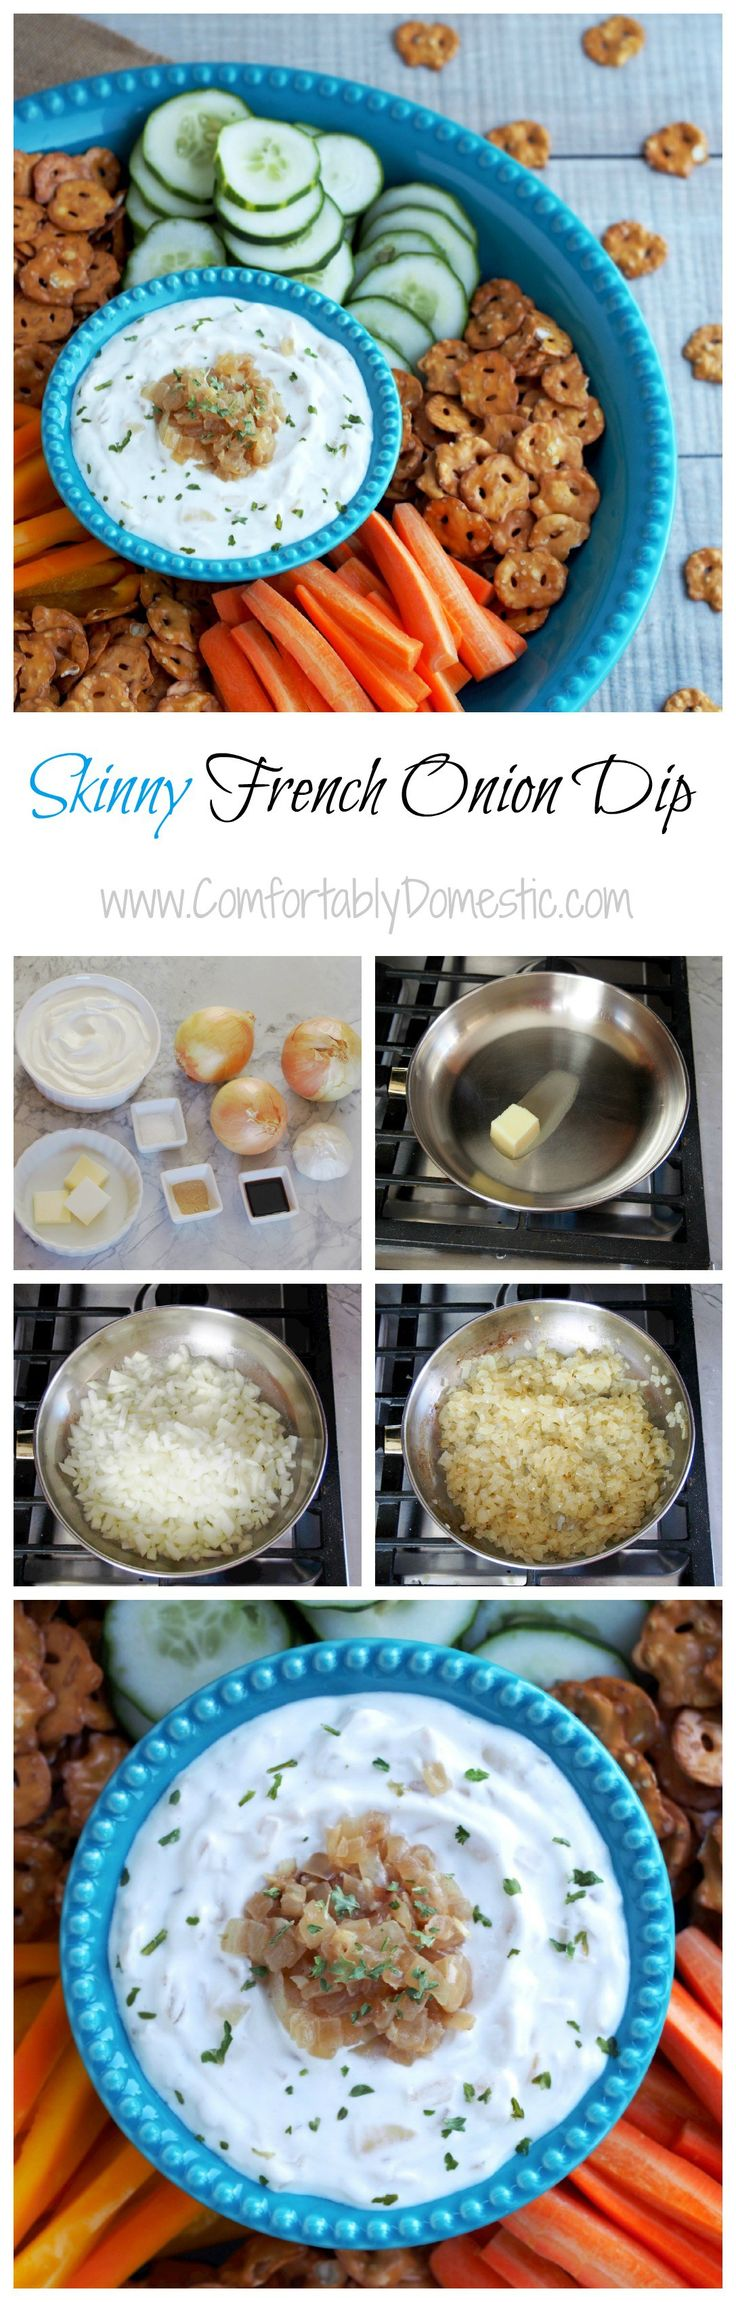 how to make gluten free french onion dip